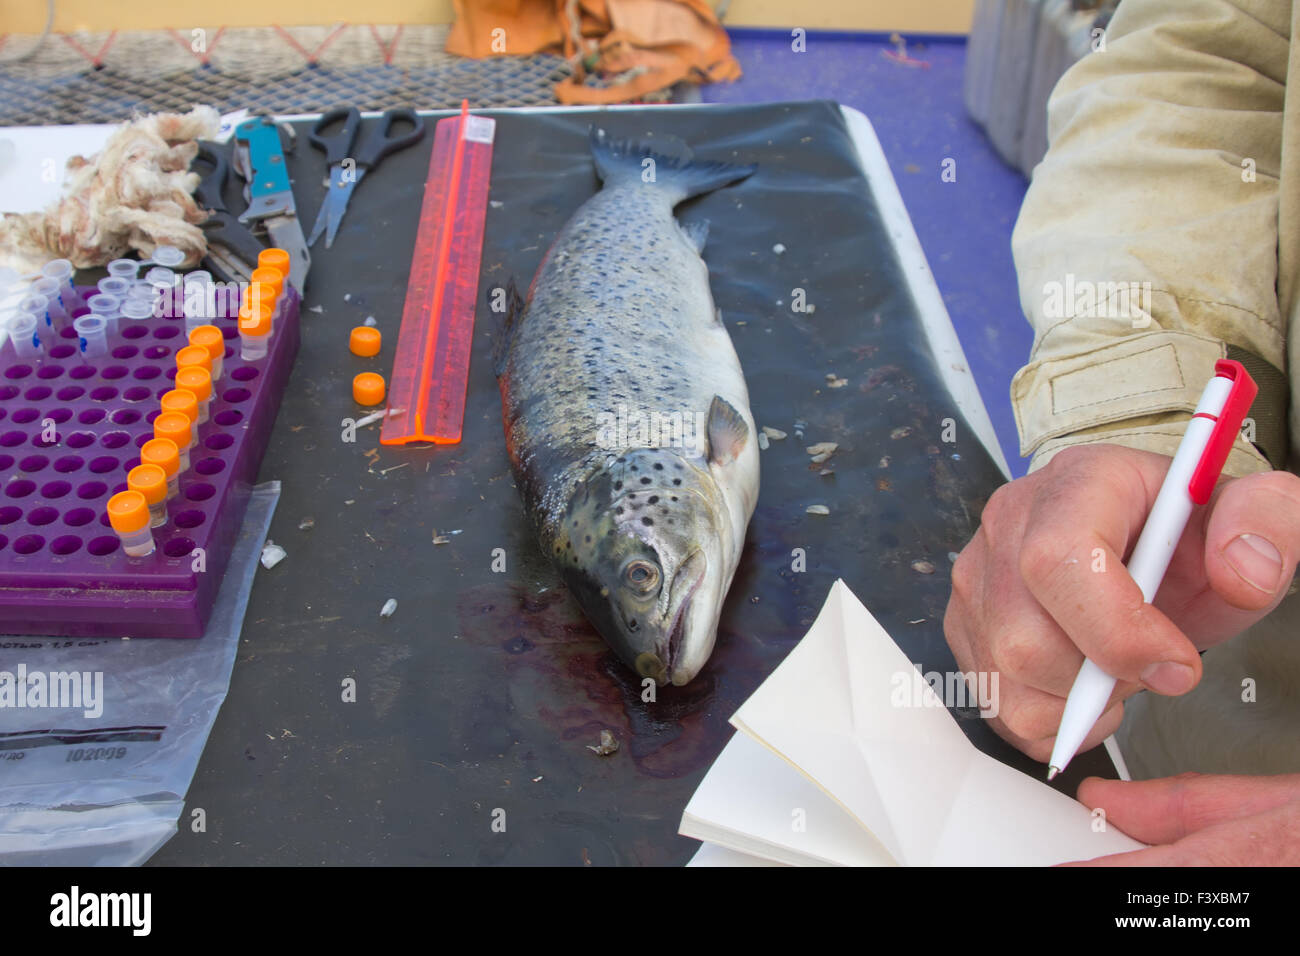 ichthyology of a salmon - Stock Image